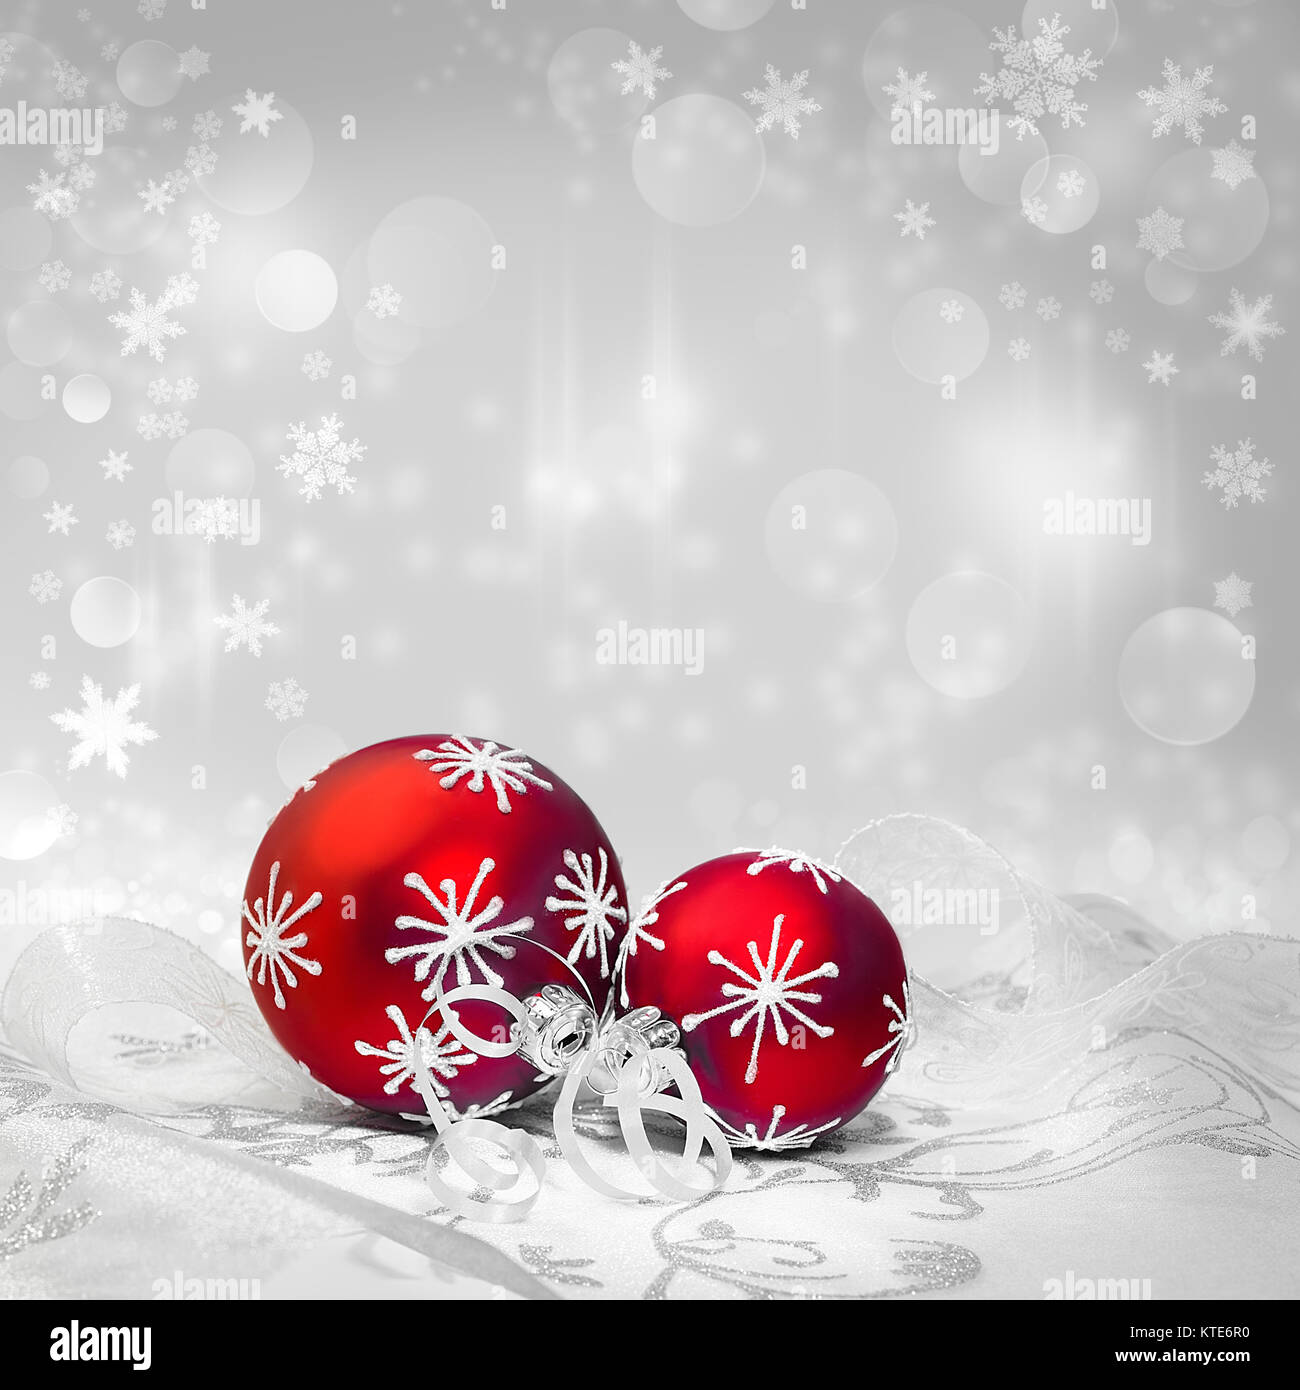 red christmas decorations with silver ornament on neutral winter background text space shallow dof focus on the knot